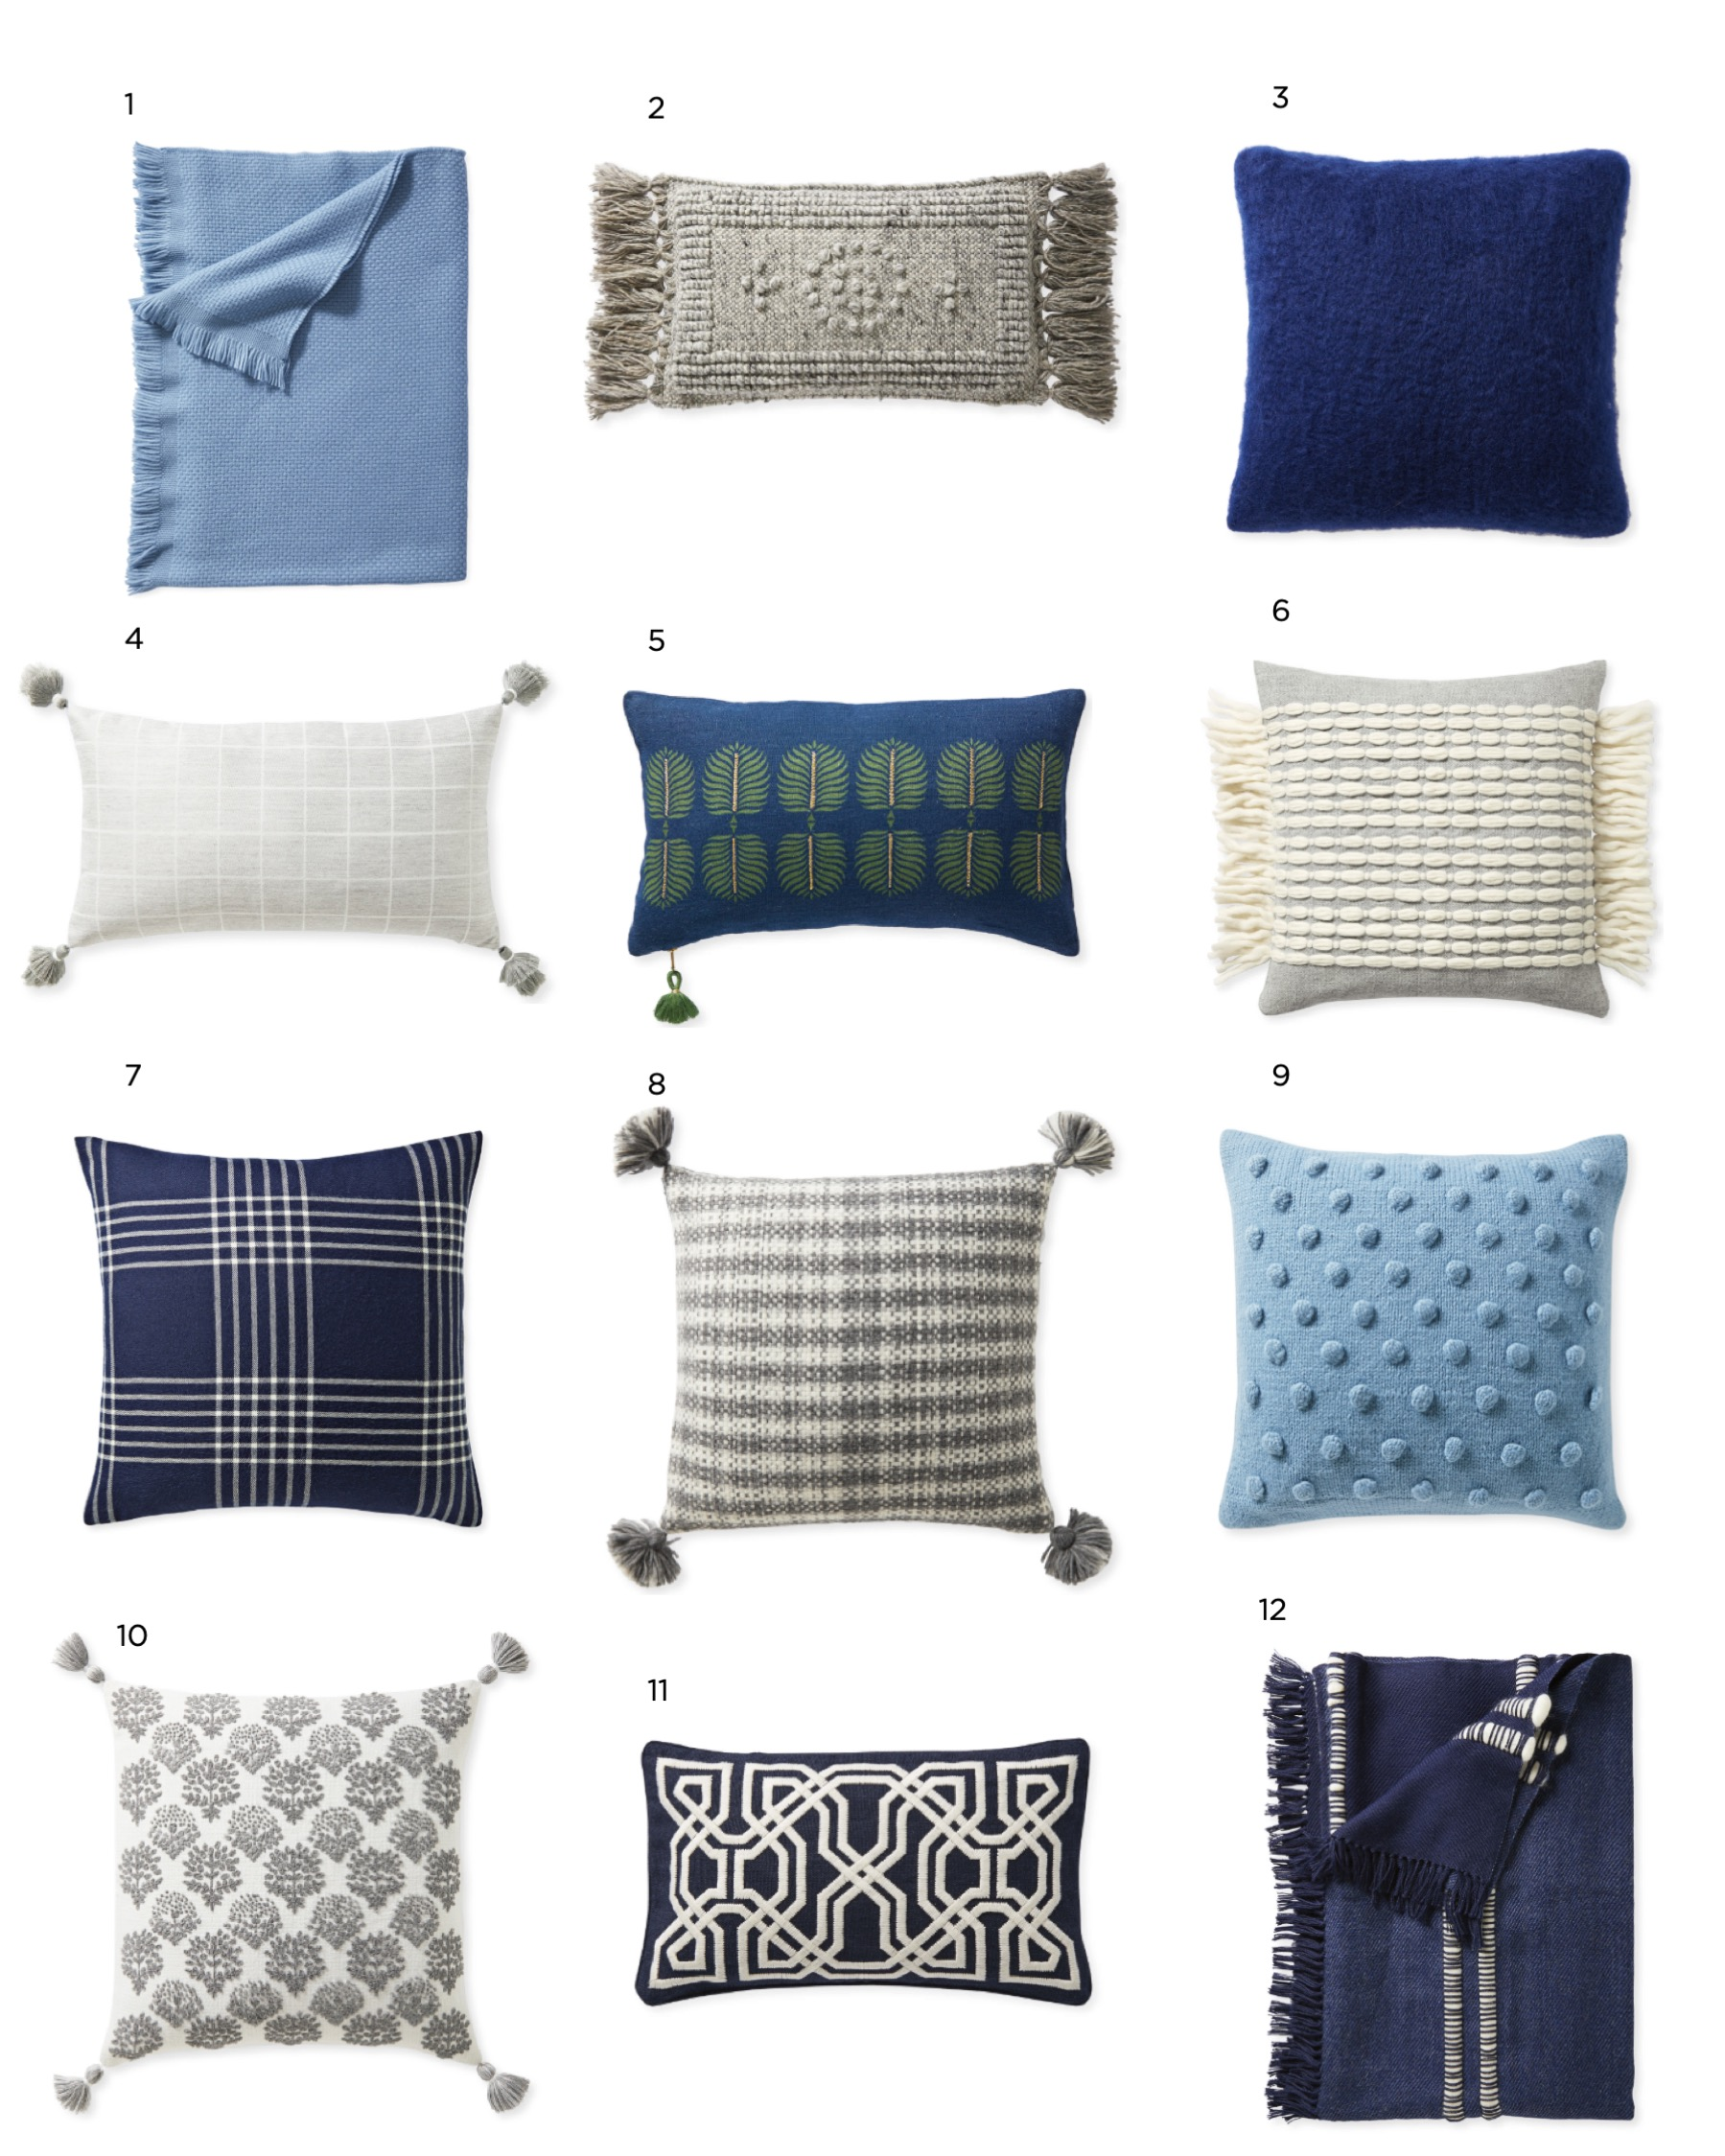 Throw Pillows from Serena & Lily